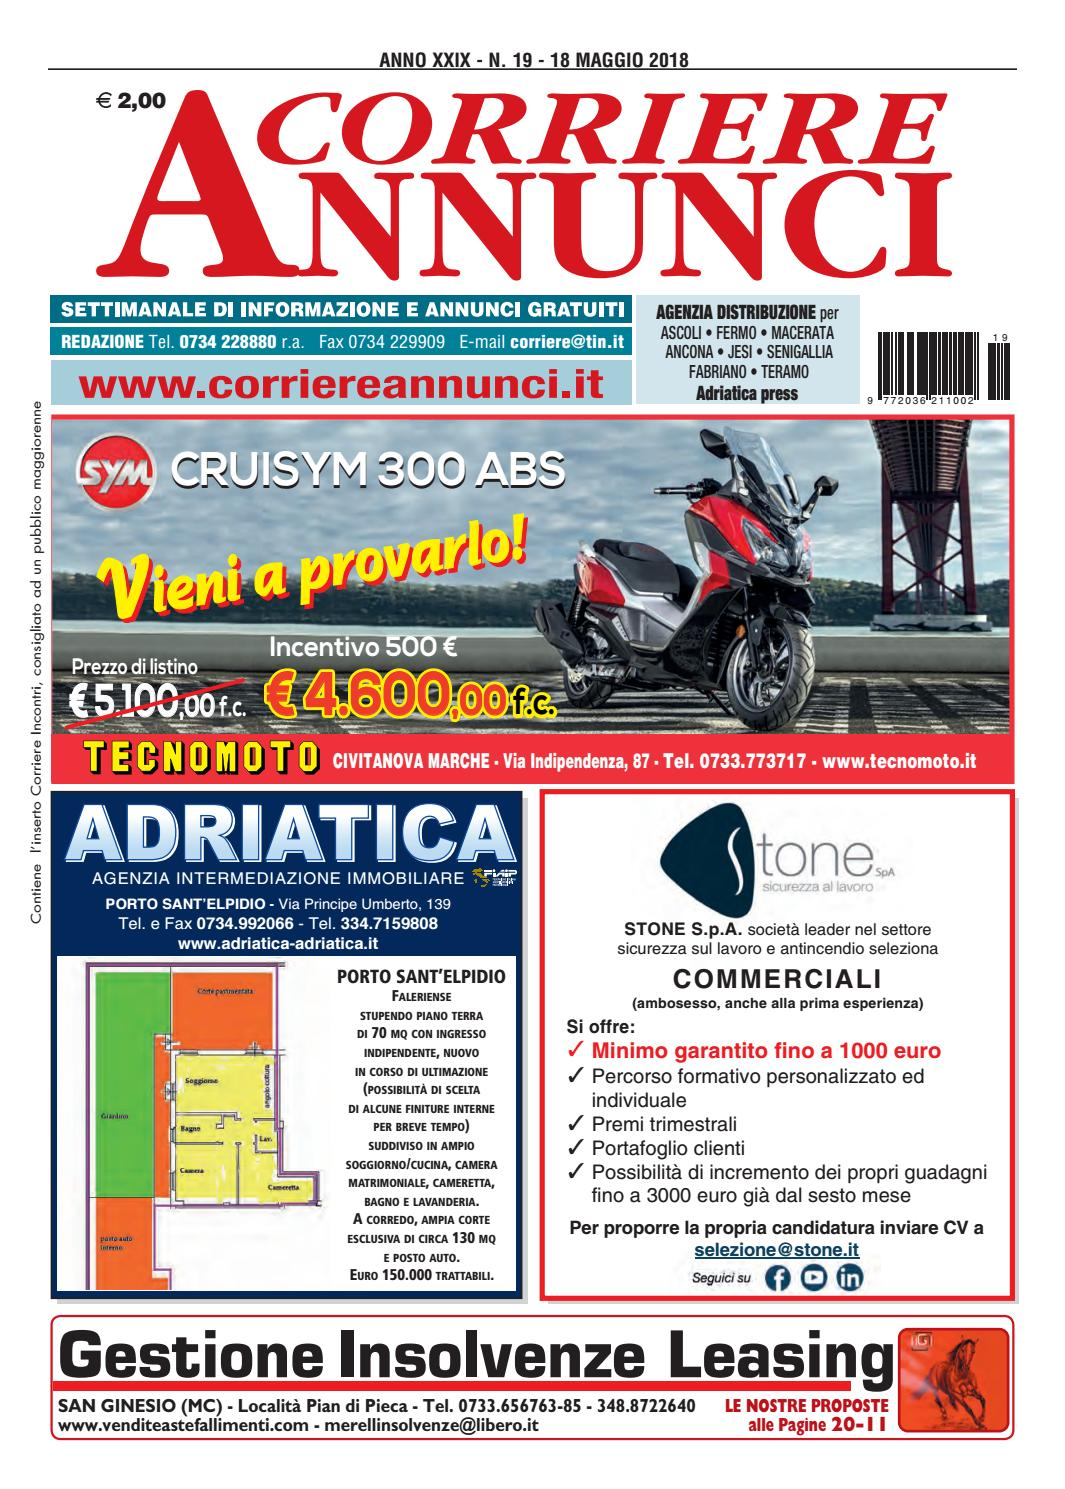 98b804bd27 Corriere 19 2018 by Corriere Annunci - issuu